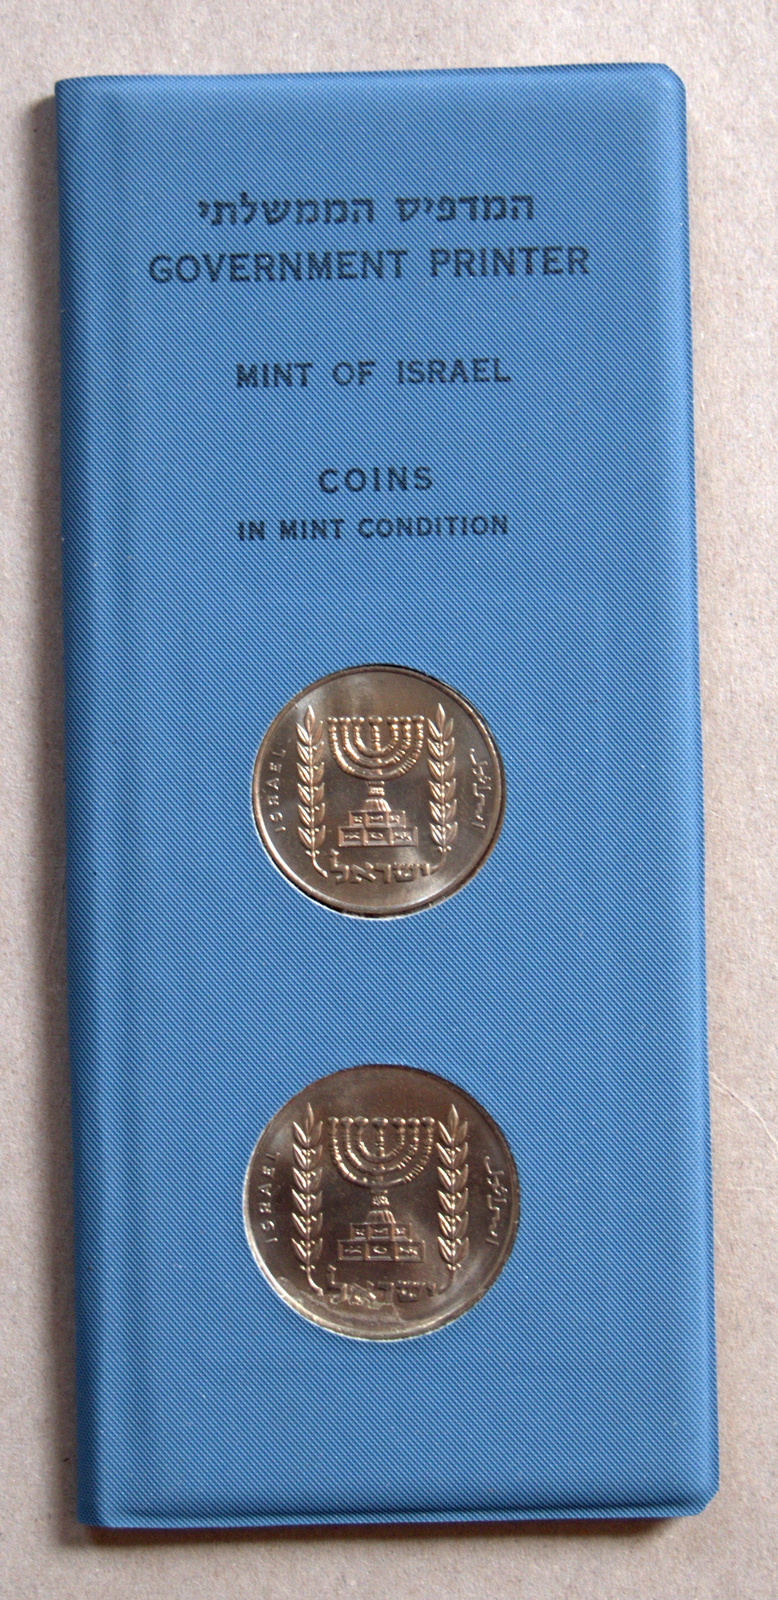 1963 First Trade Coin Presentation Set Israel in Folder Mint Government Printer